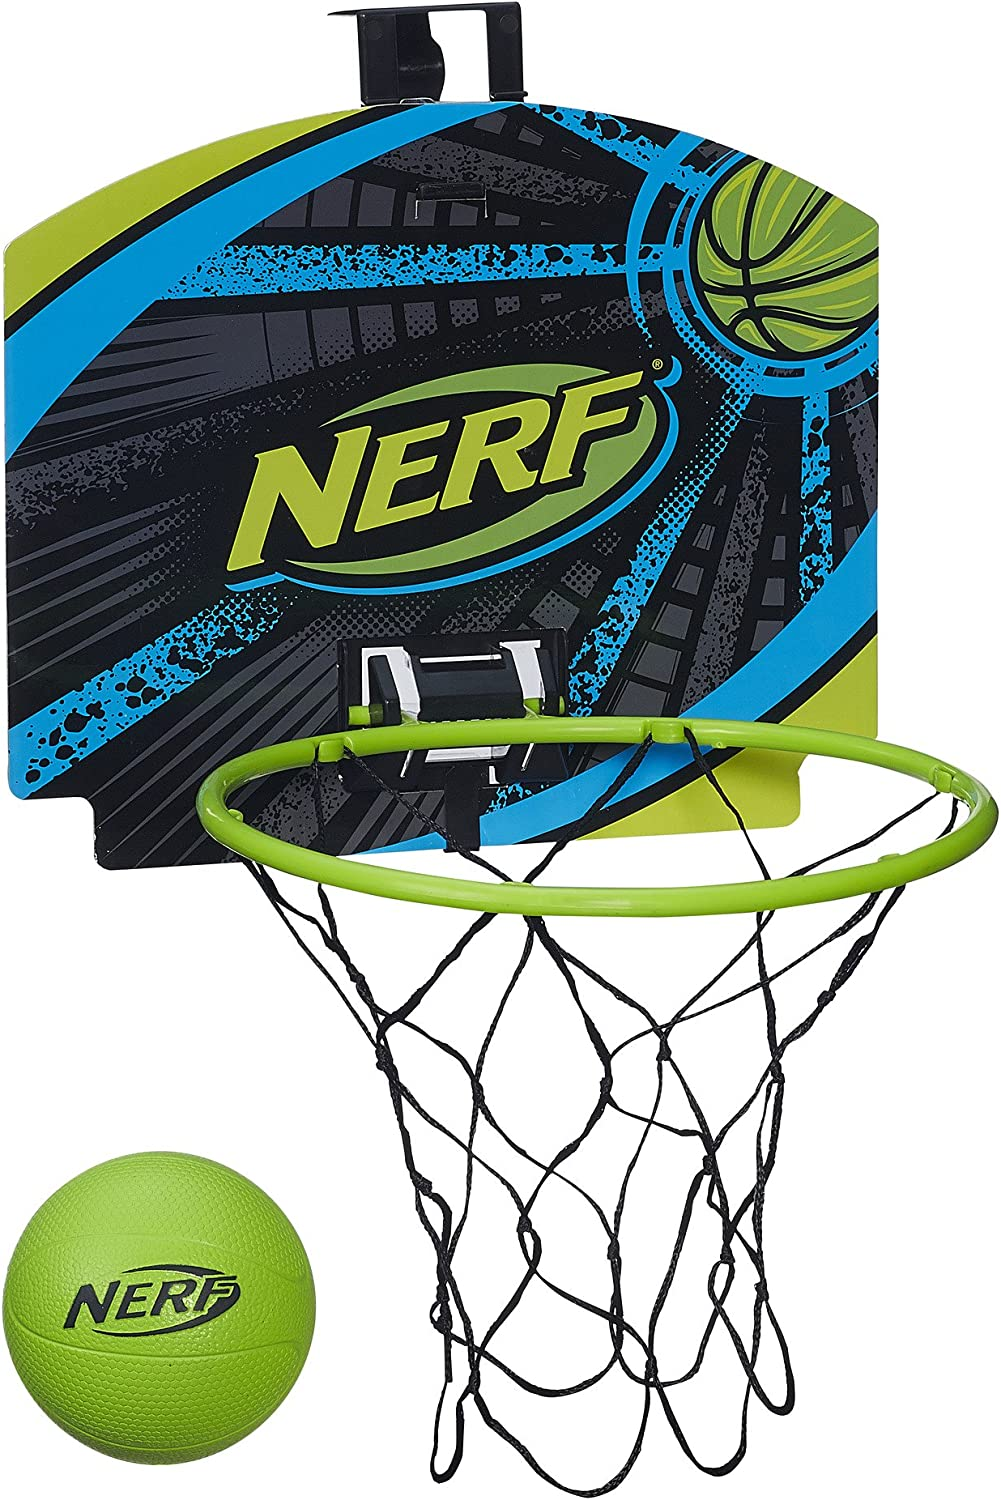 Hasbro Nerf n-Sports nerfoop Set, grün grau